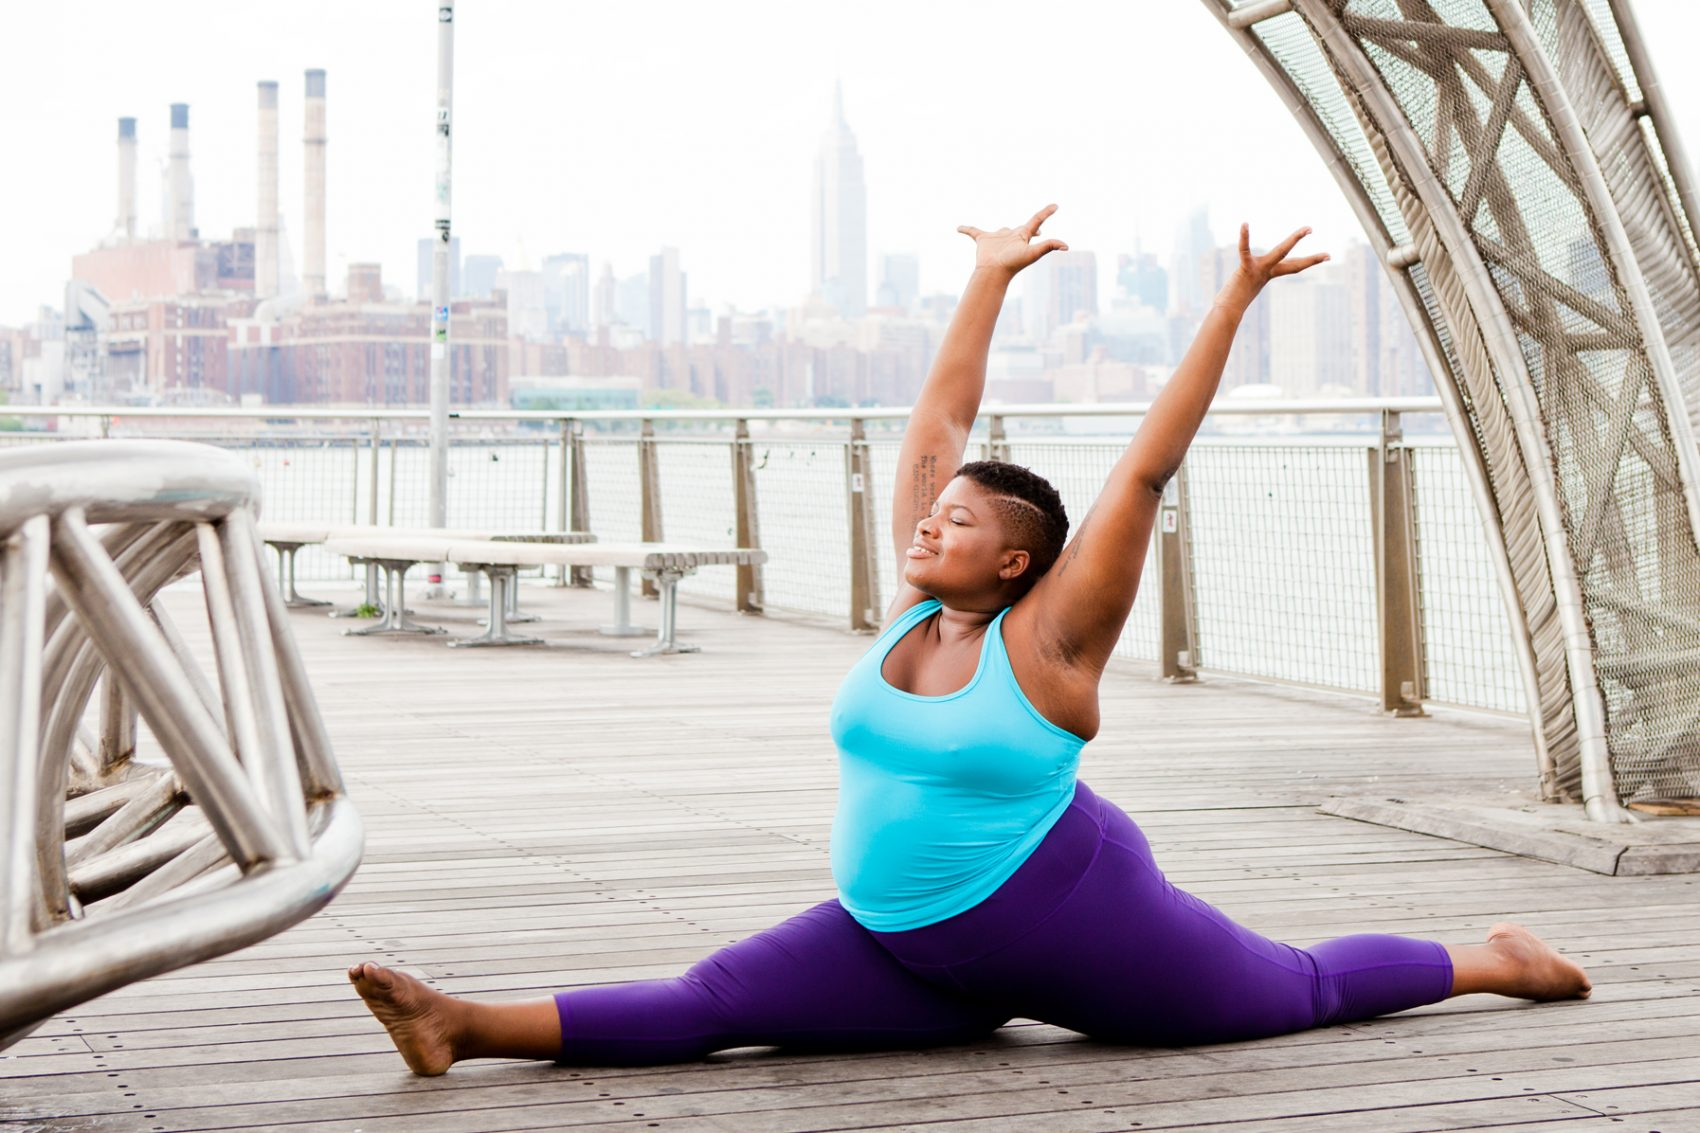 Every Body Yoga Encourages Self Love And Everyone To Get